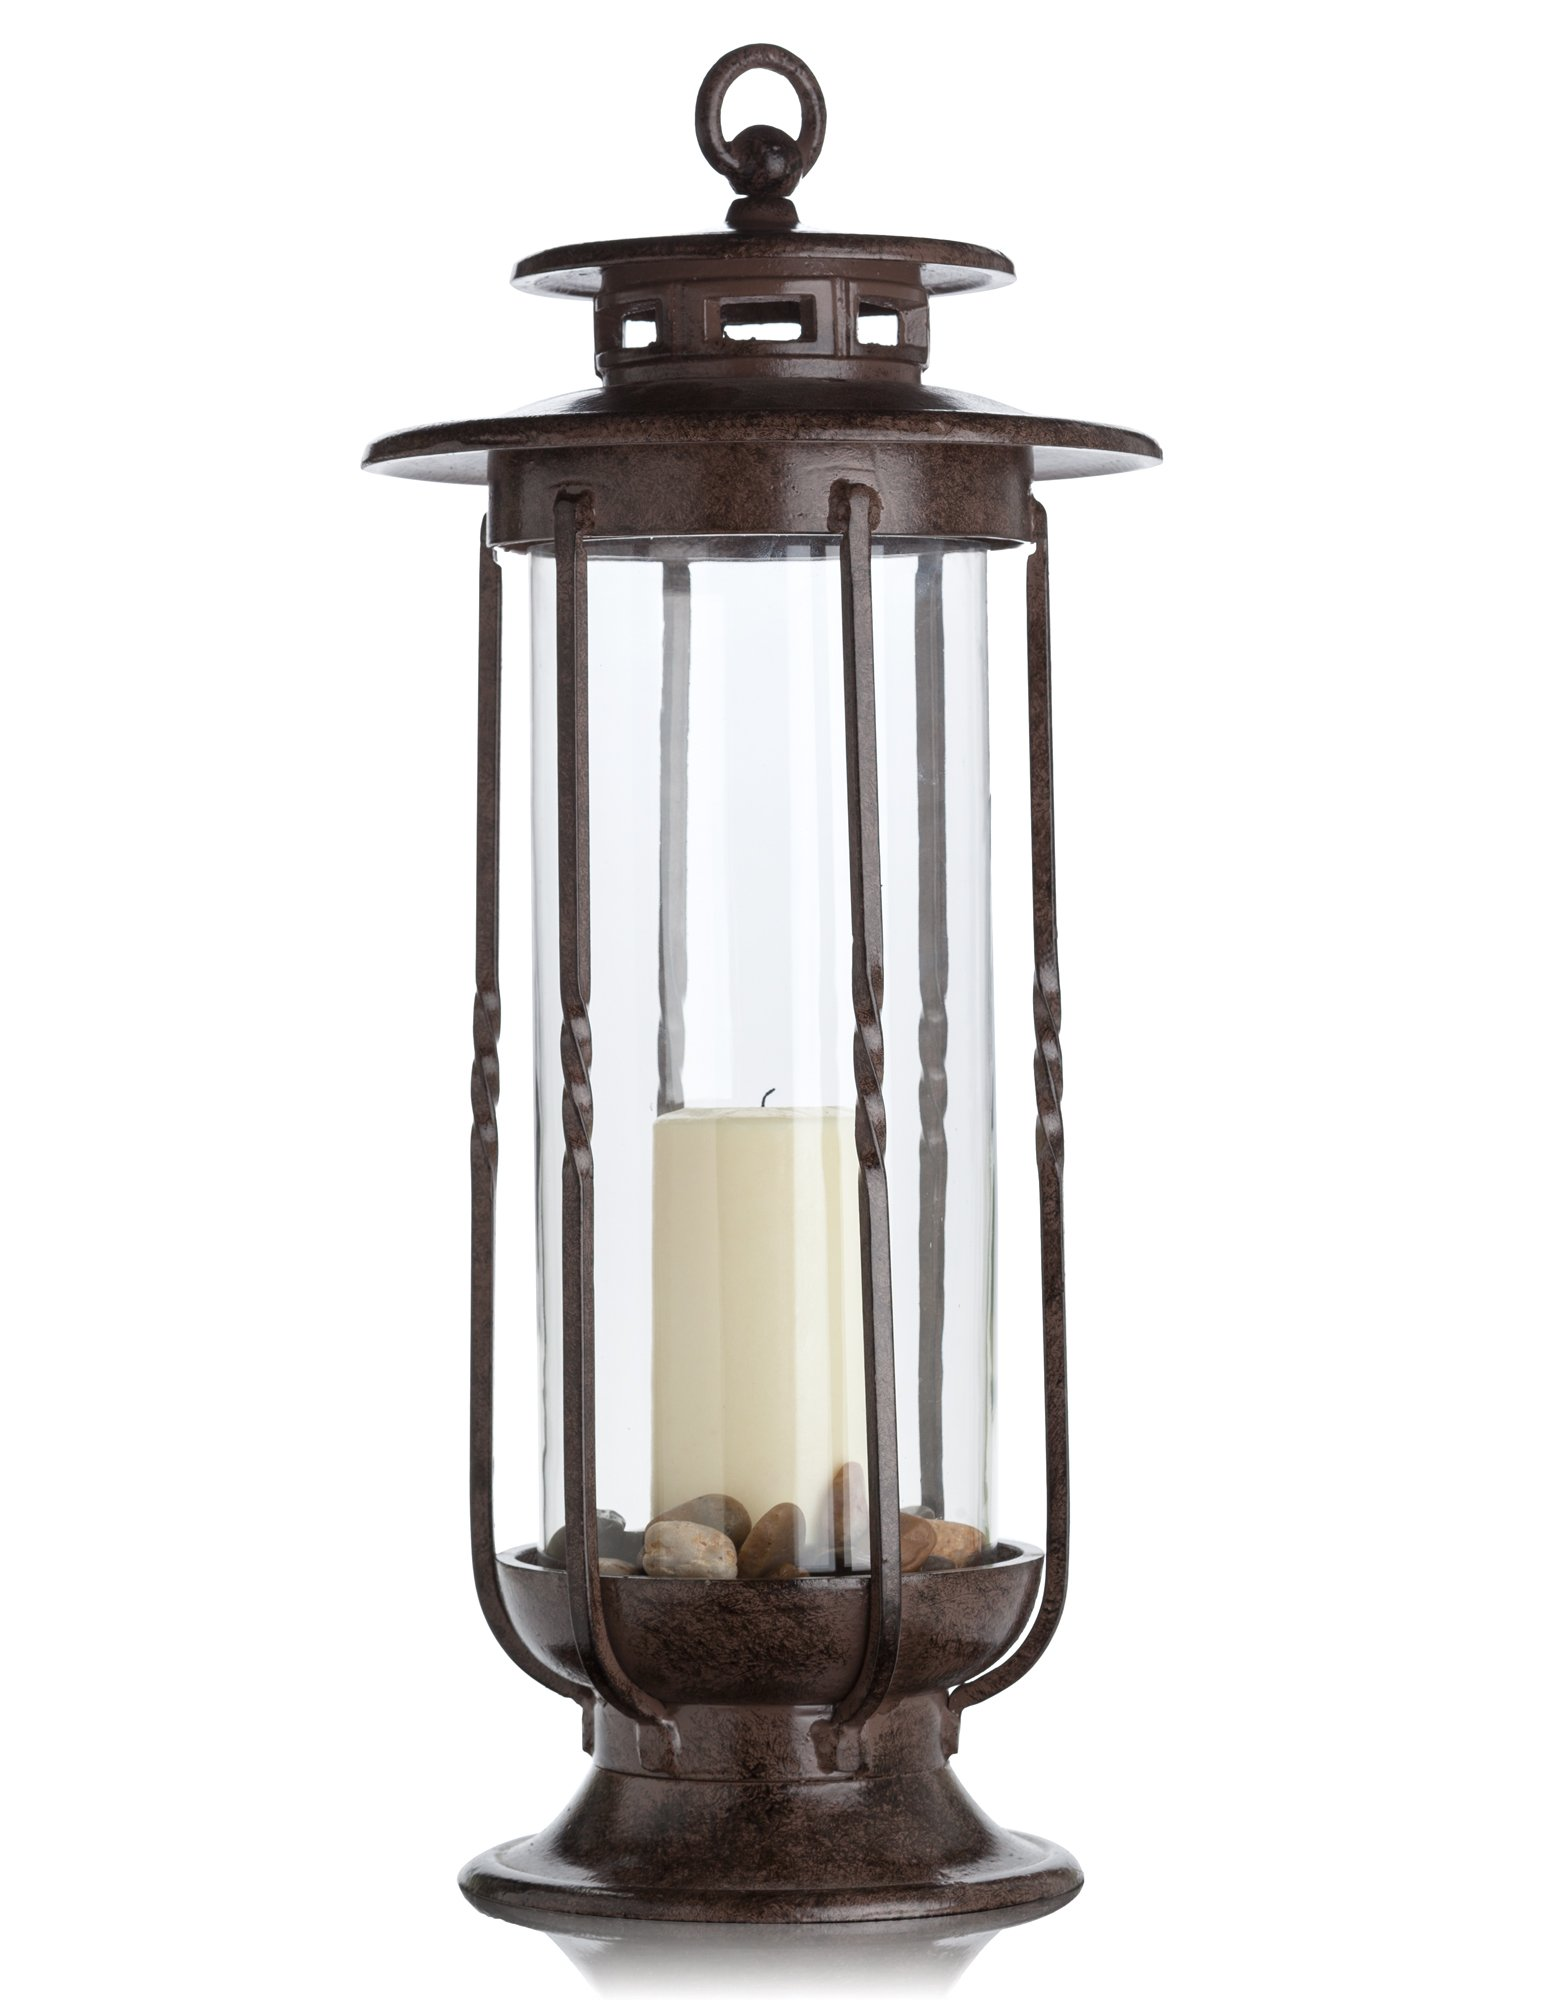 H Potter Large Decorative Hurricane Lantern Glass Candle Holder, Cast Iron, Rustic Indoor & Outdoor Light with Powder Coat Finish Centerpiece for Home, Wedding & Farmhouse Decor by H Potter